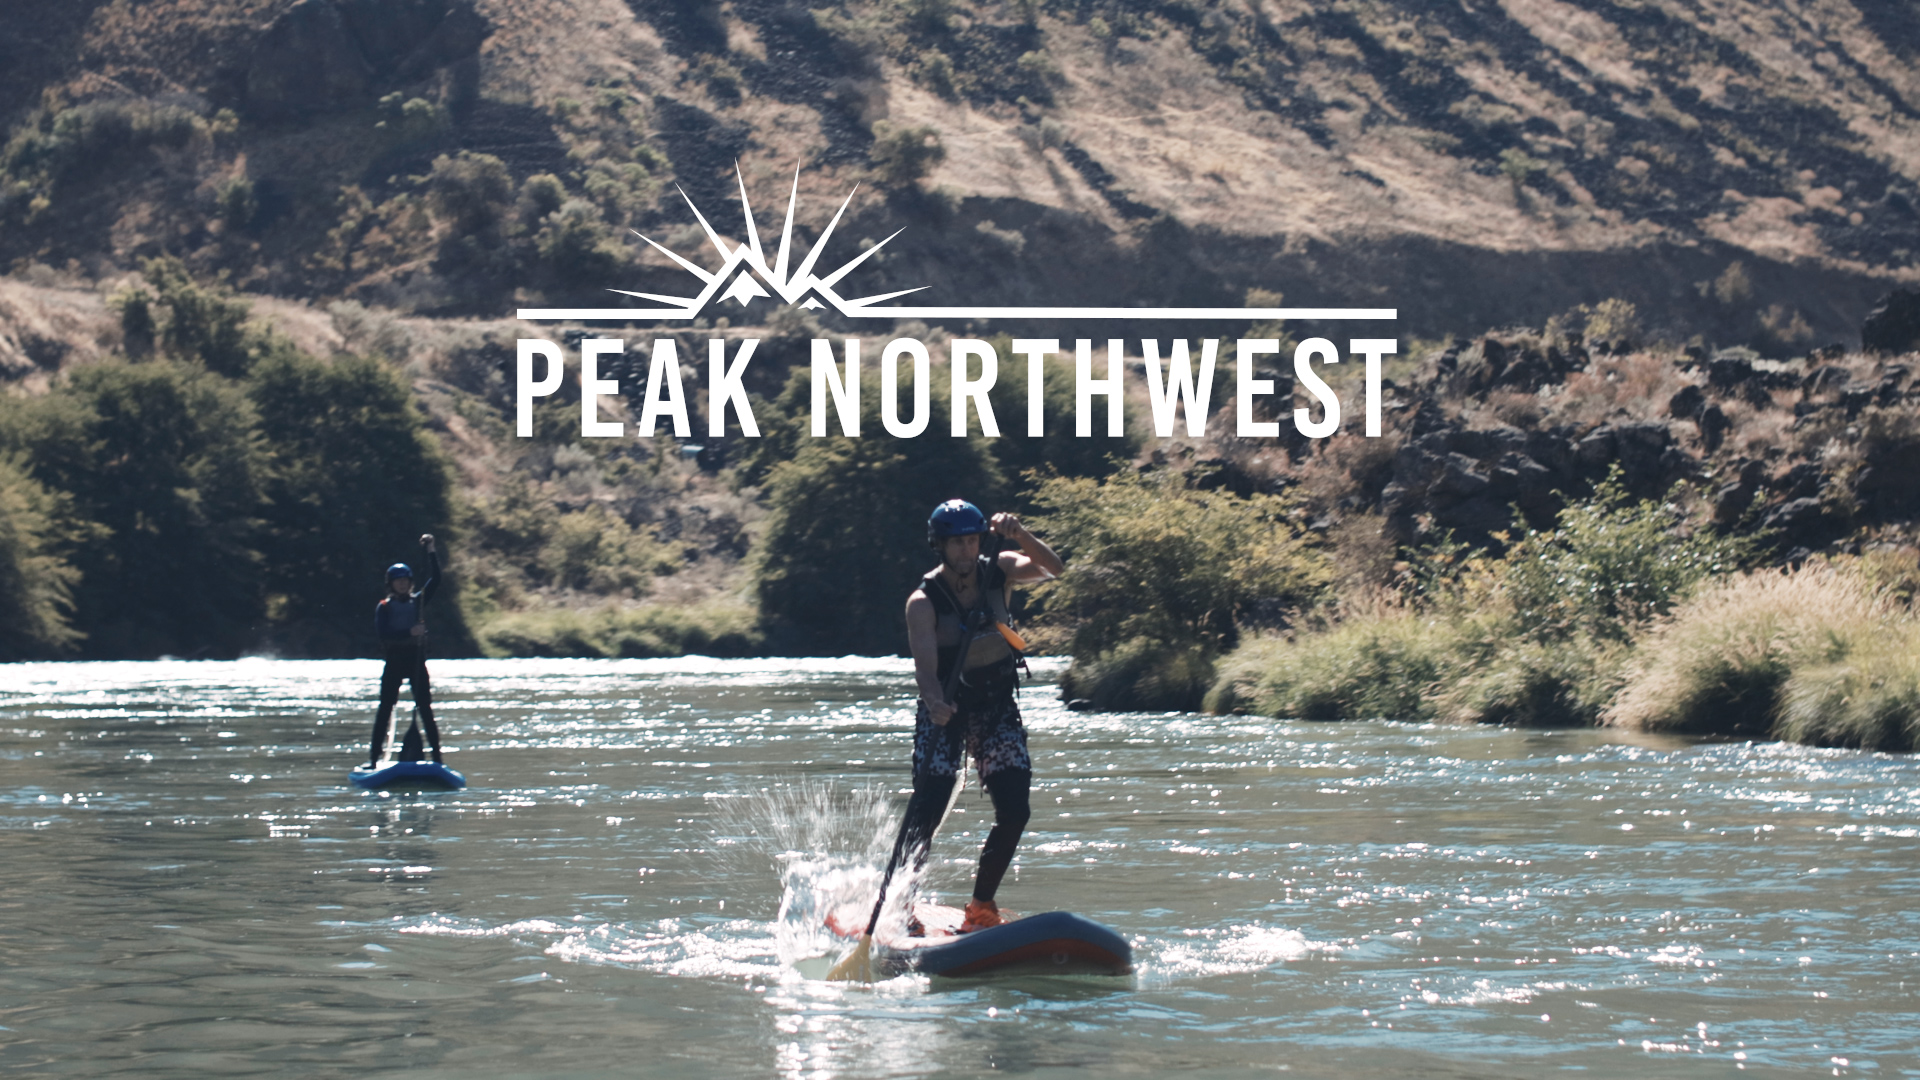 PEAK NORTHWEST: We tried stand-up whitewater paddleboarding on the Deschutes River. Here's how it went. (video)